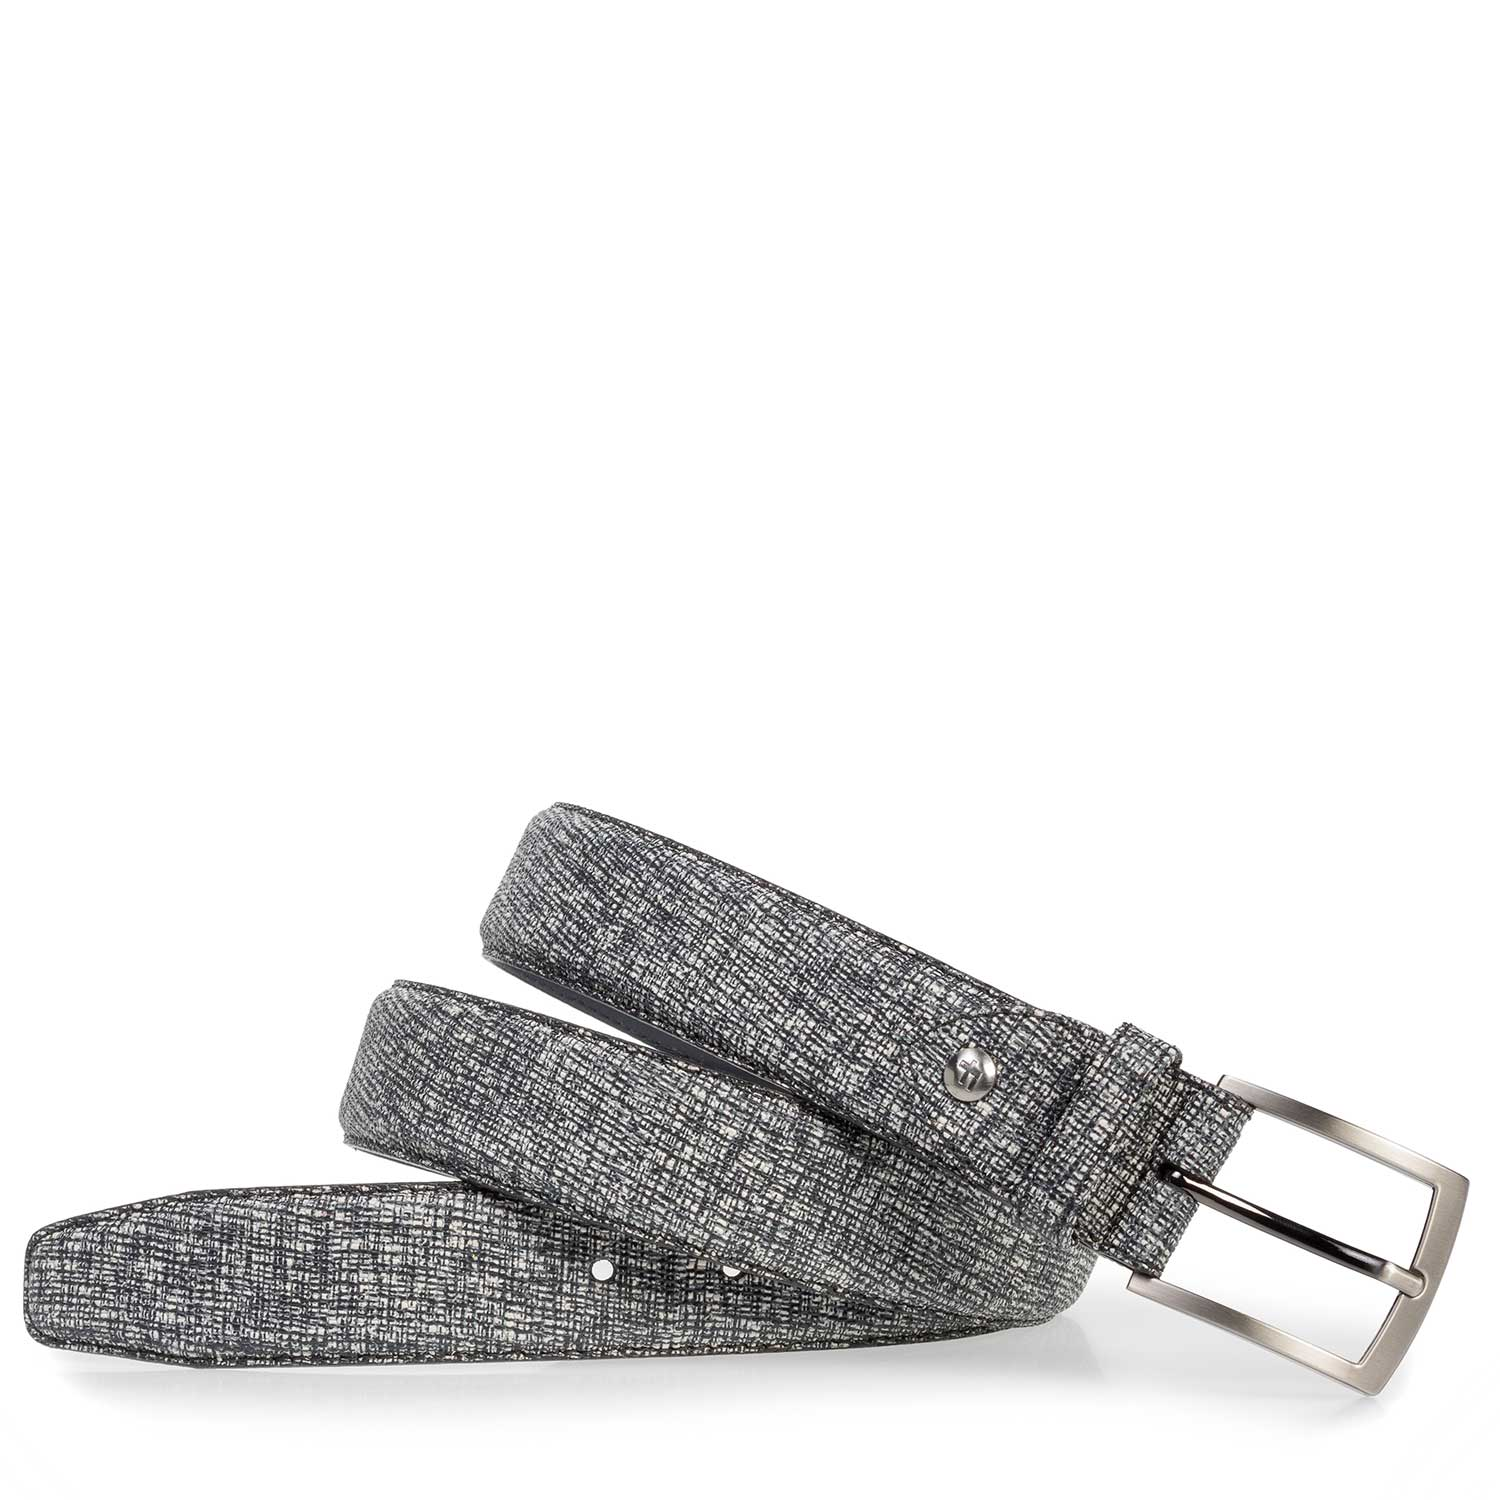 75201/05 - Grey leather belt with black print